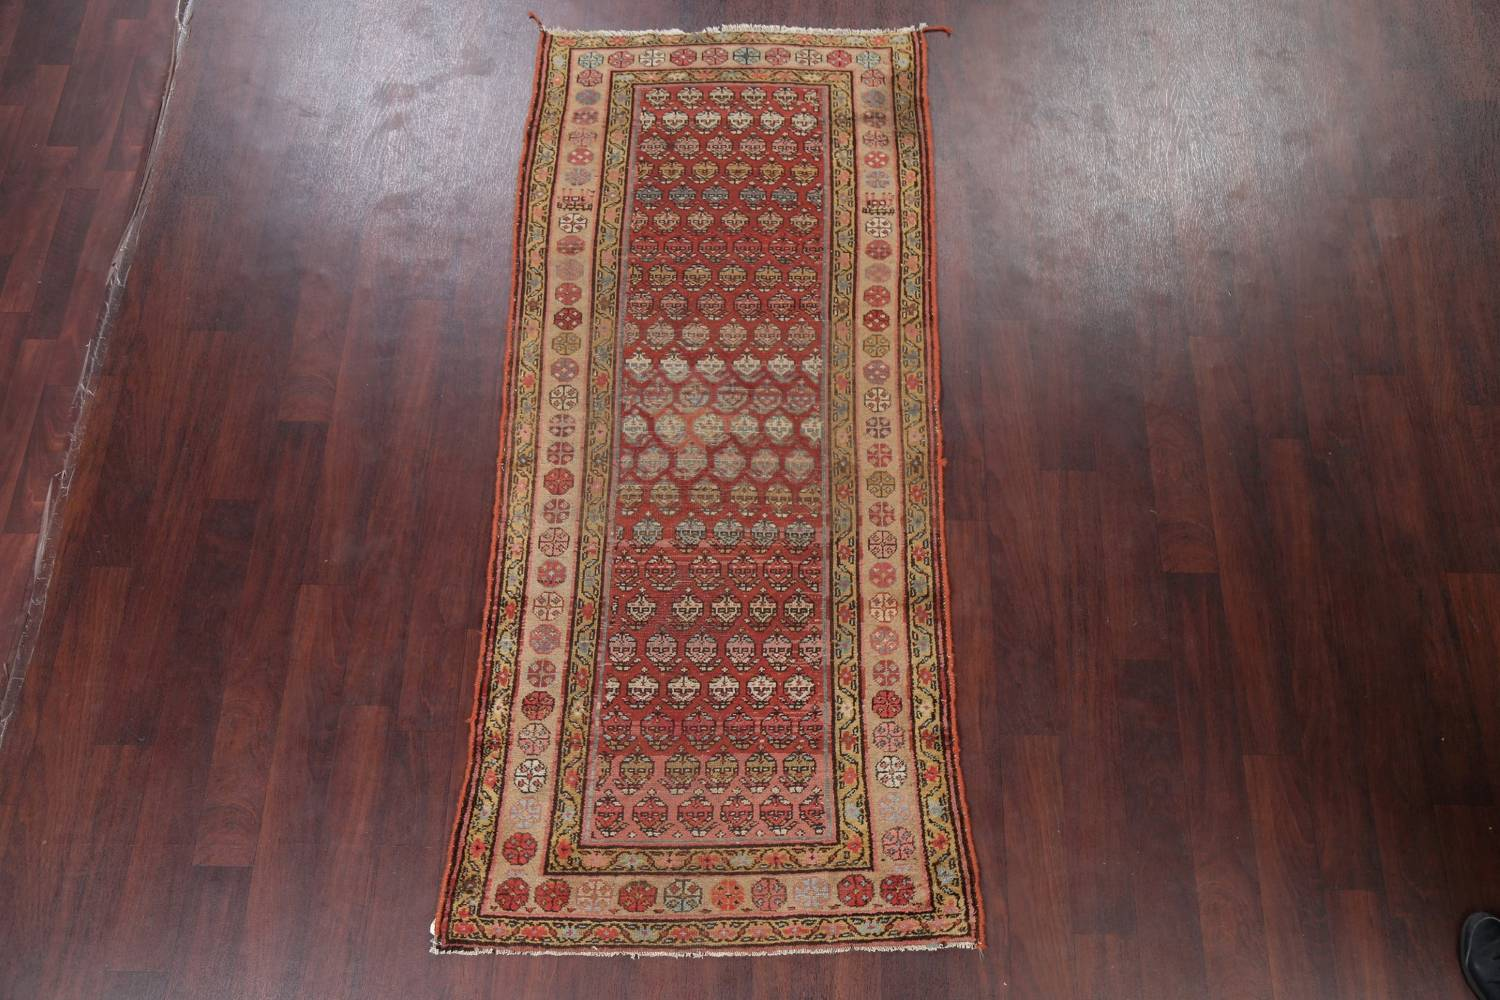 Pre-1900 Antique Vegetable Dye Malayer Persian Rug 3x8 image 2